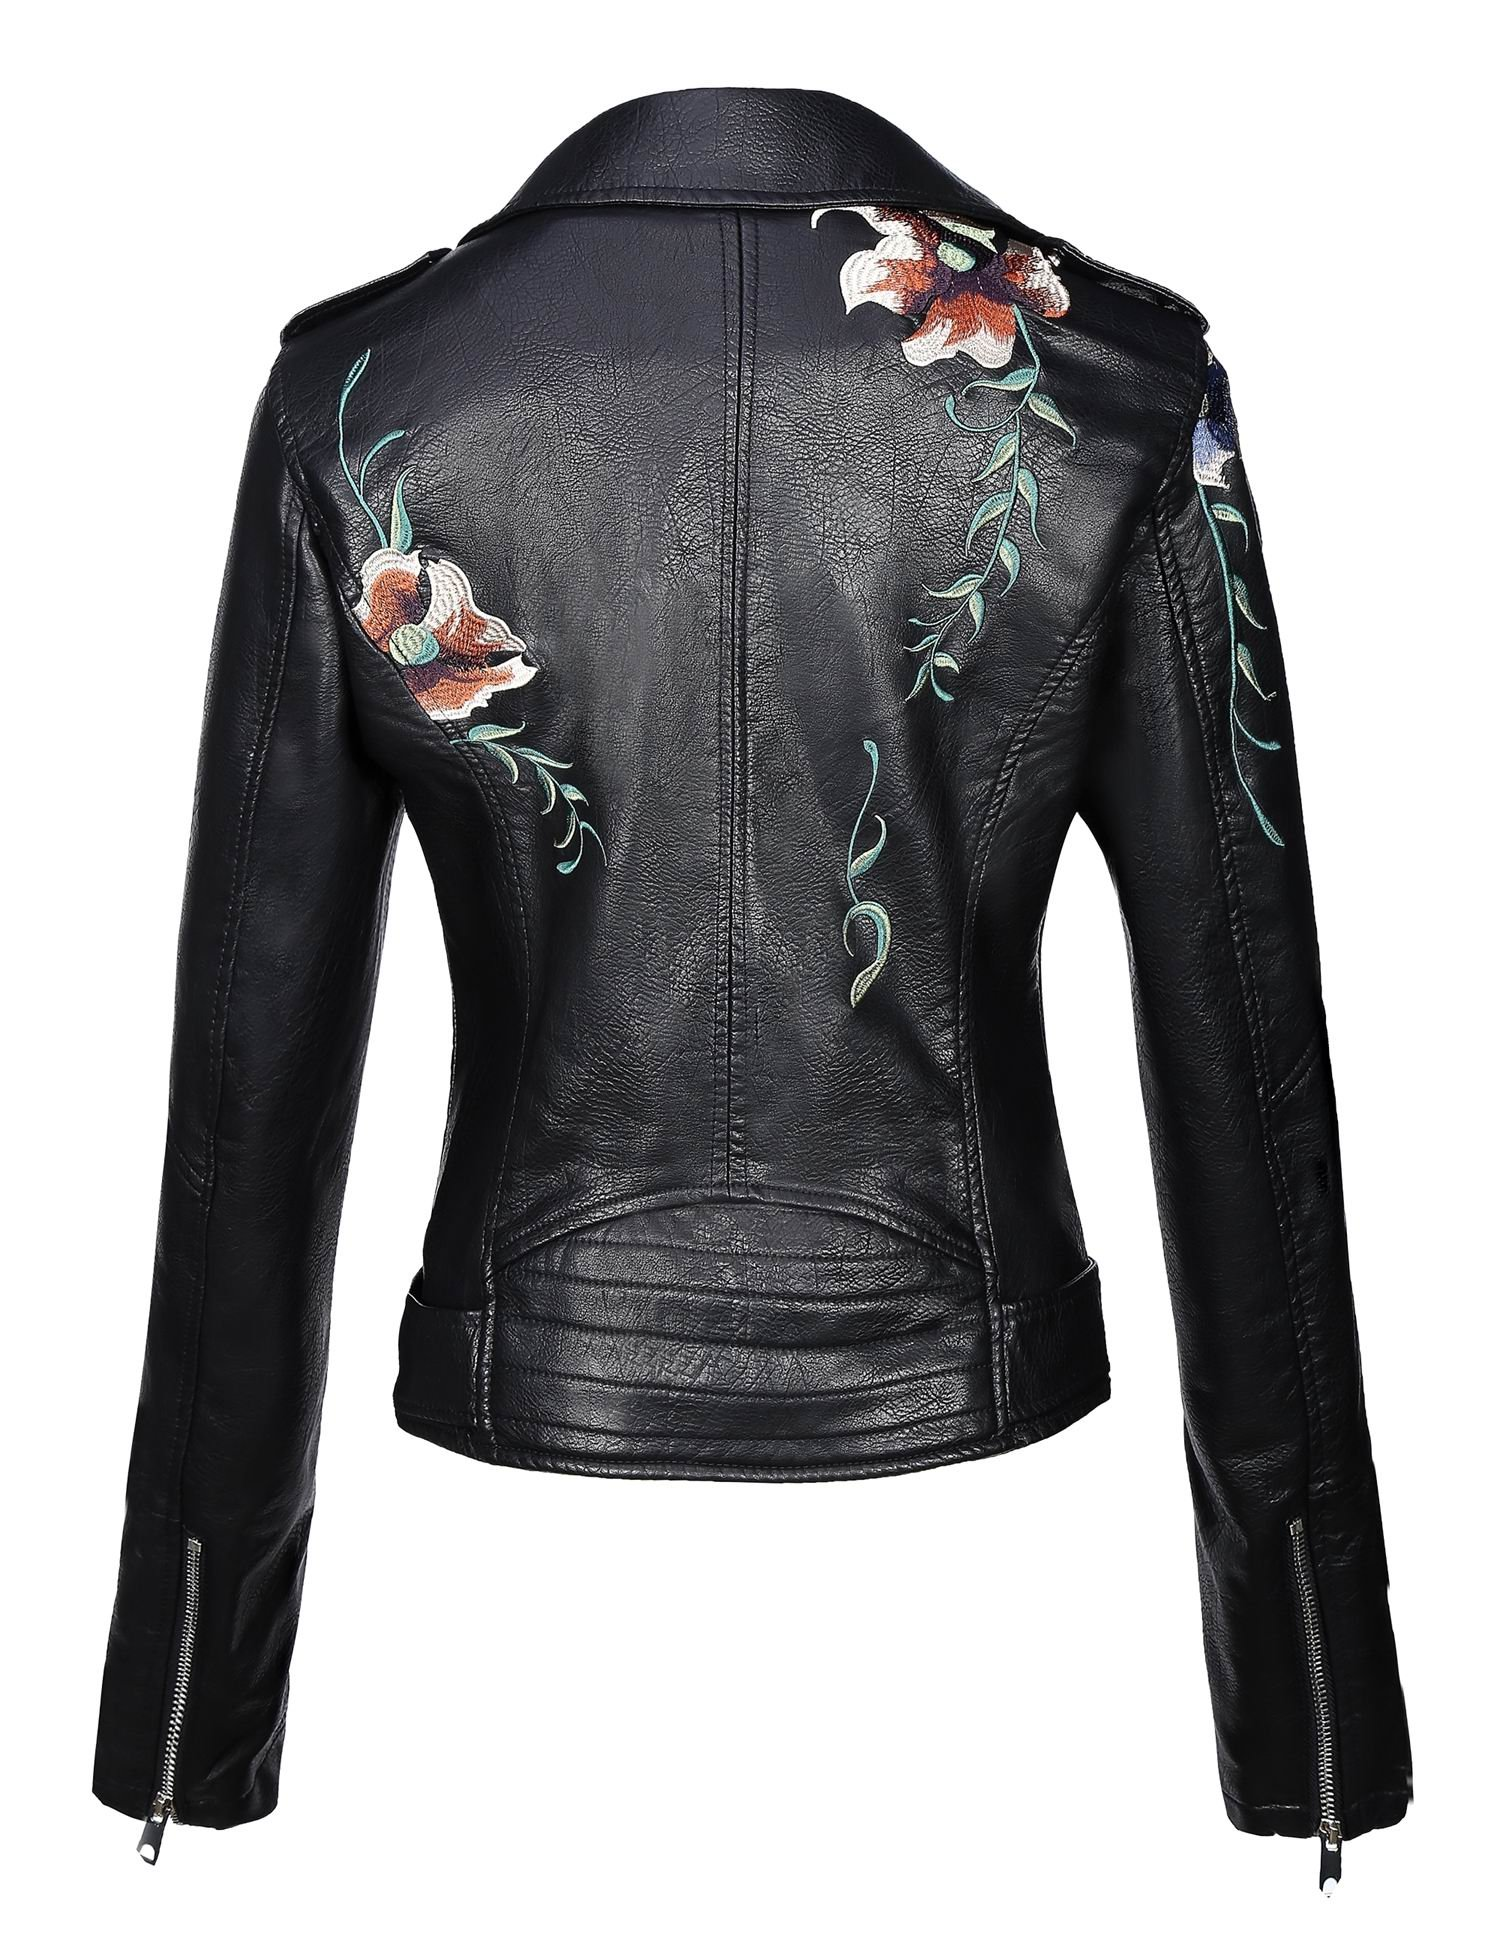 Bellivera Womens Long Sleeves Faux Leather Embroidery Floral Zipper Jacket by Bellivera (Image #2)